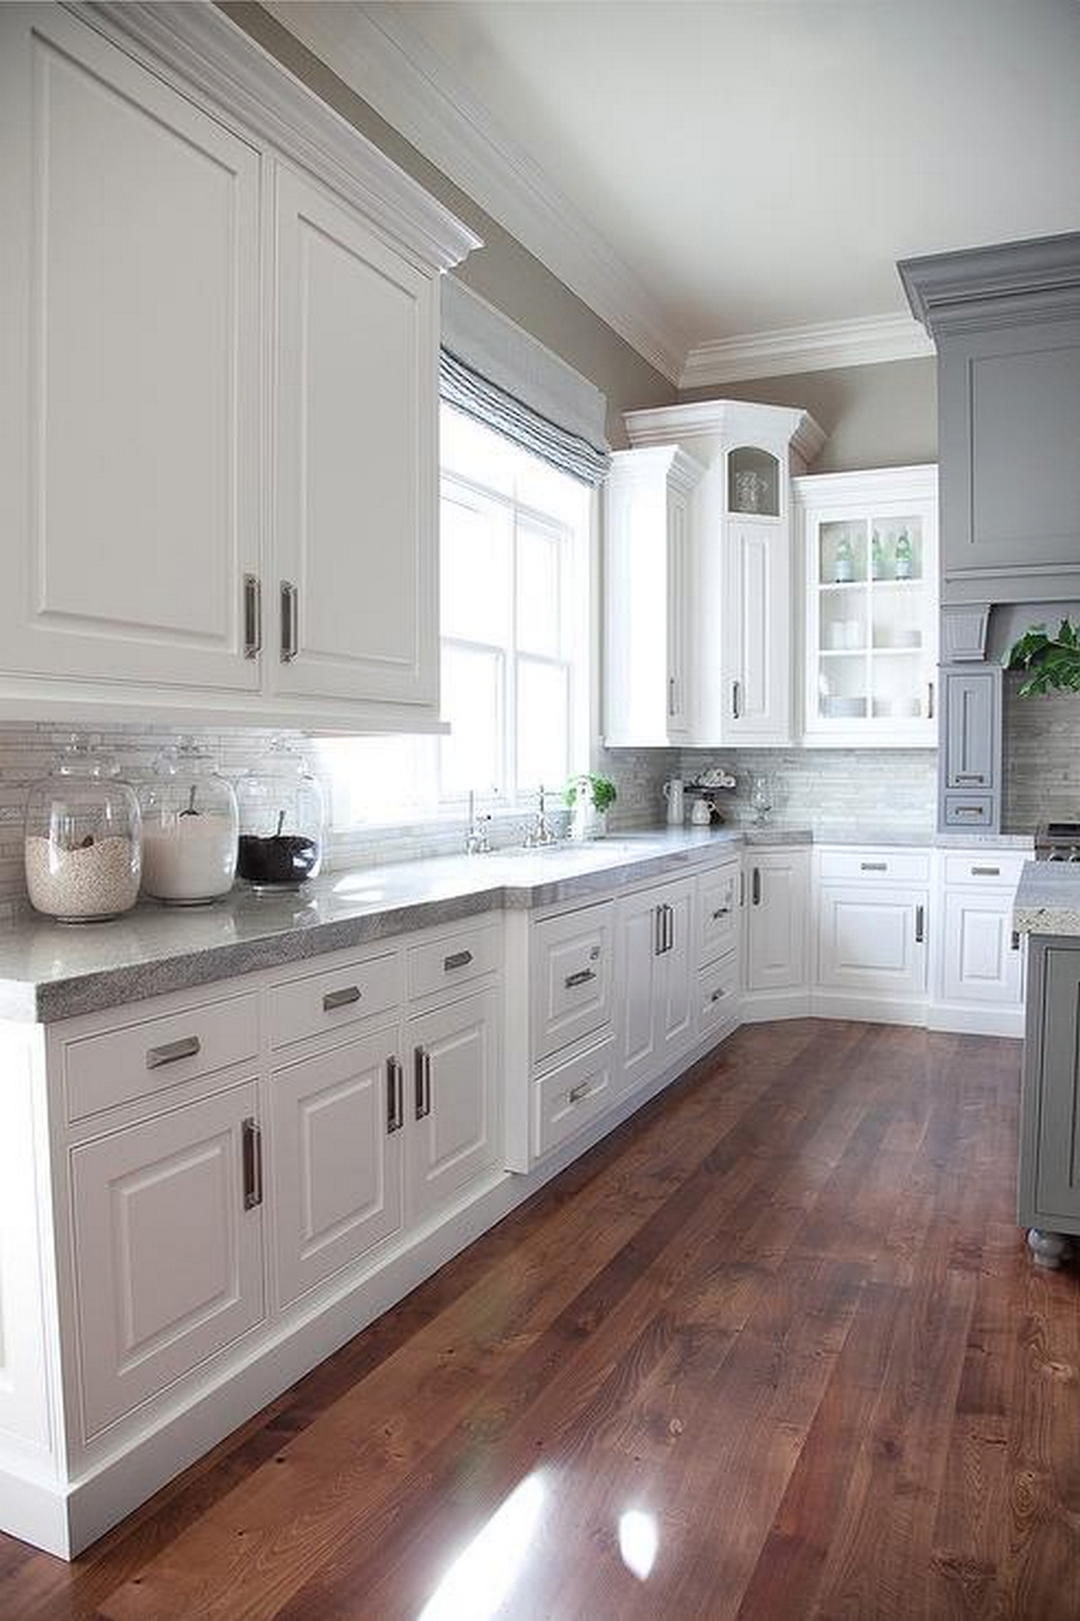 Captivating Pretty White Kitchen Design Ideas!